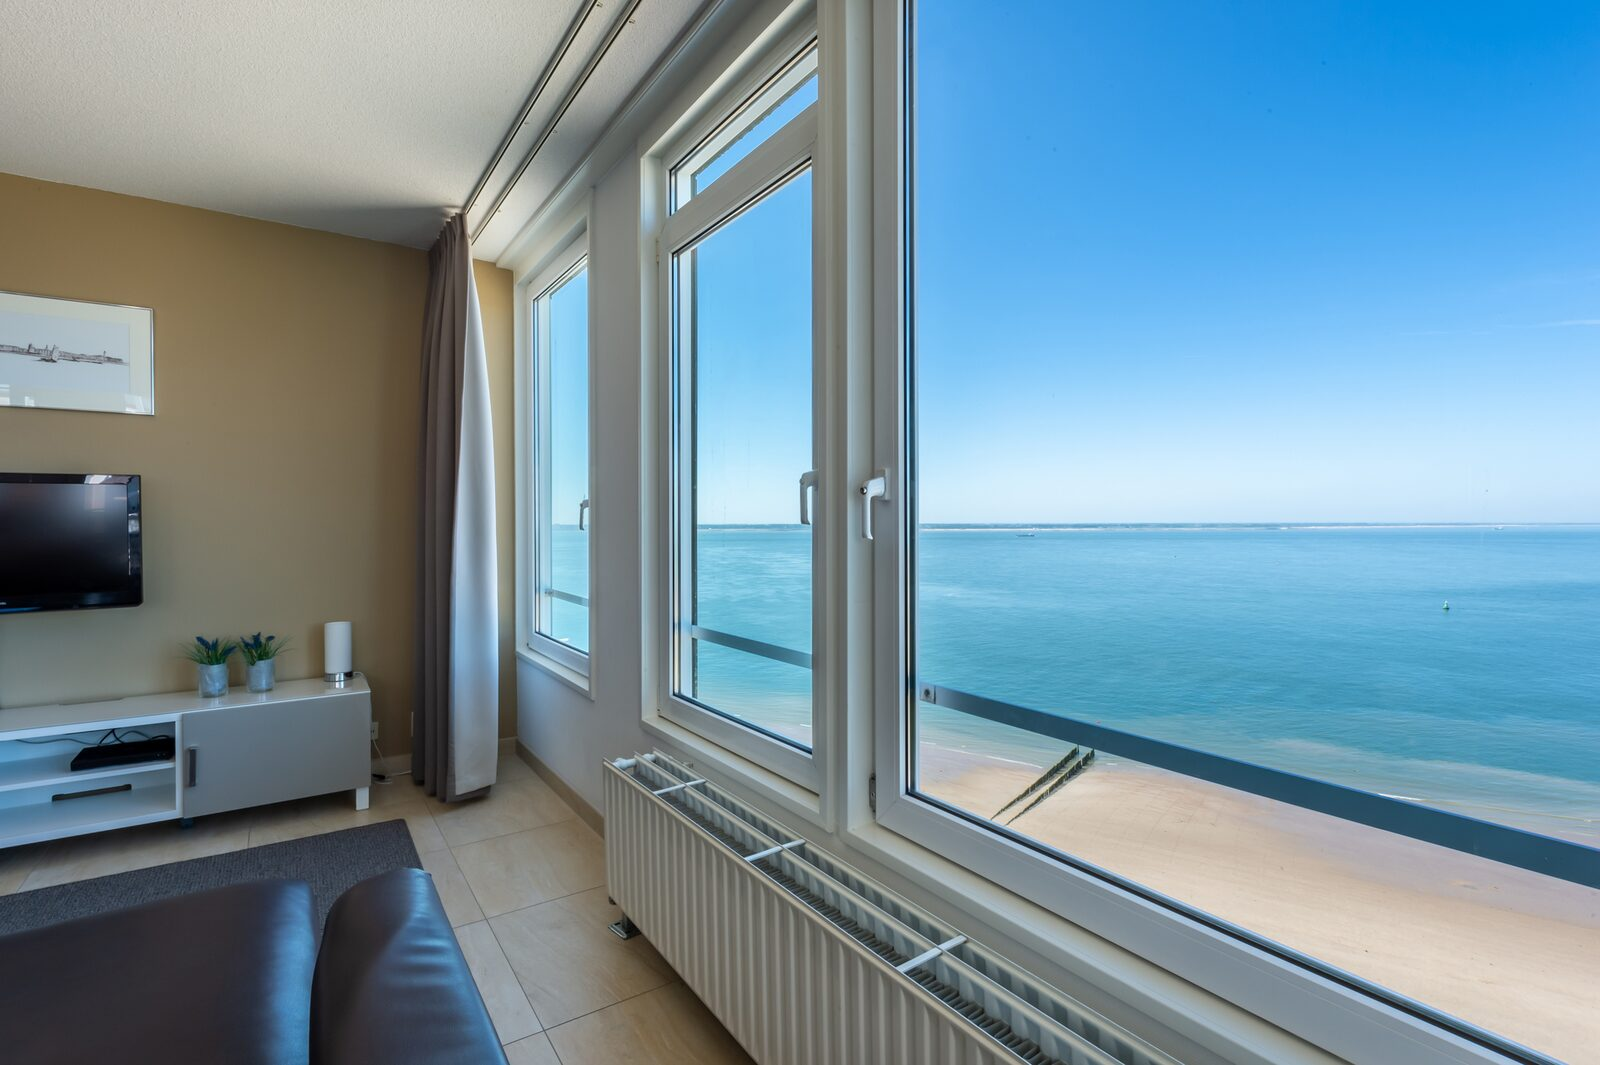 Penthouse 750 with ocean view